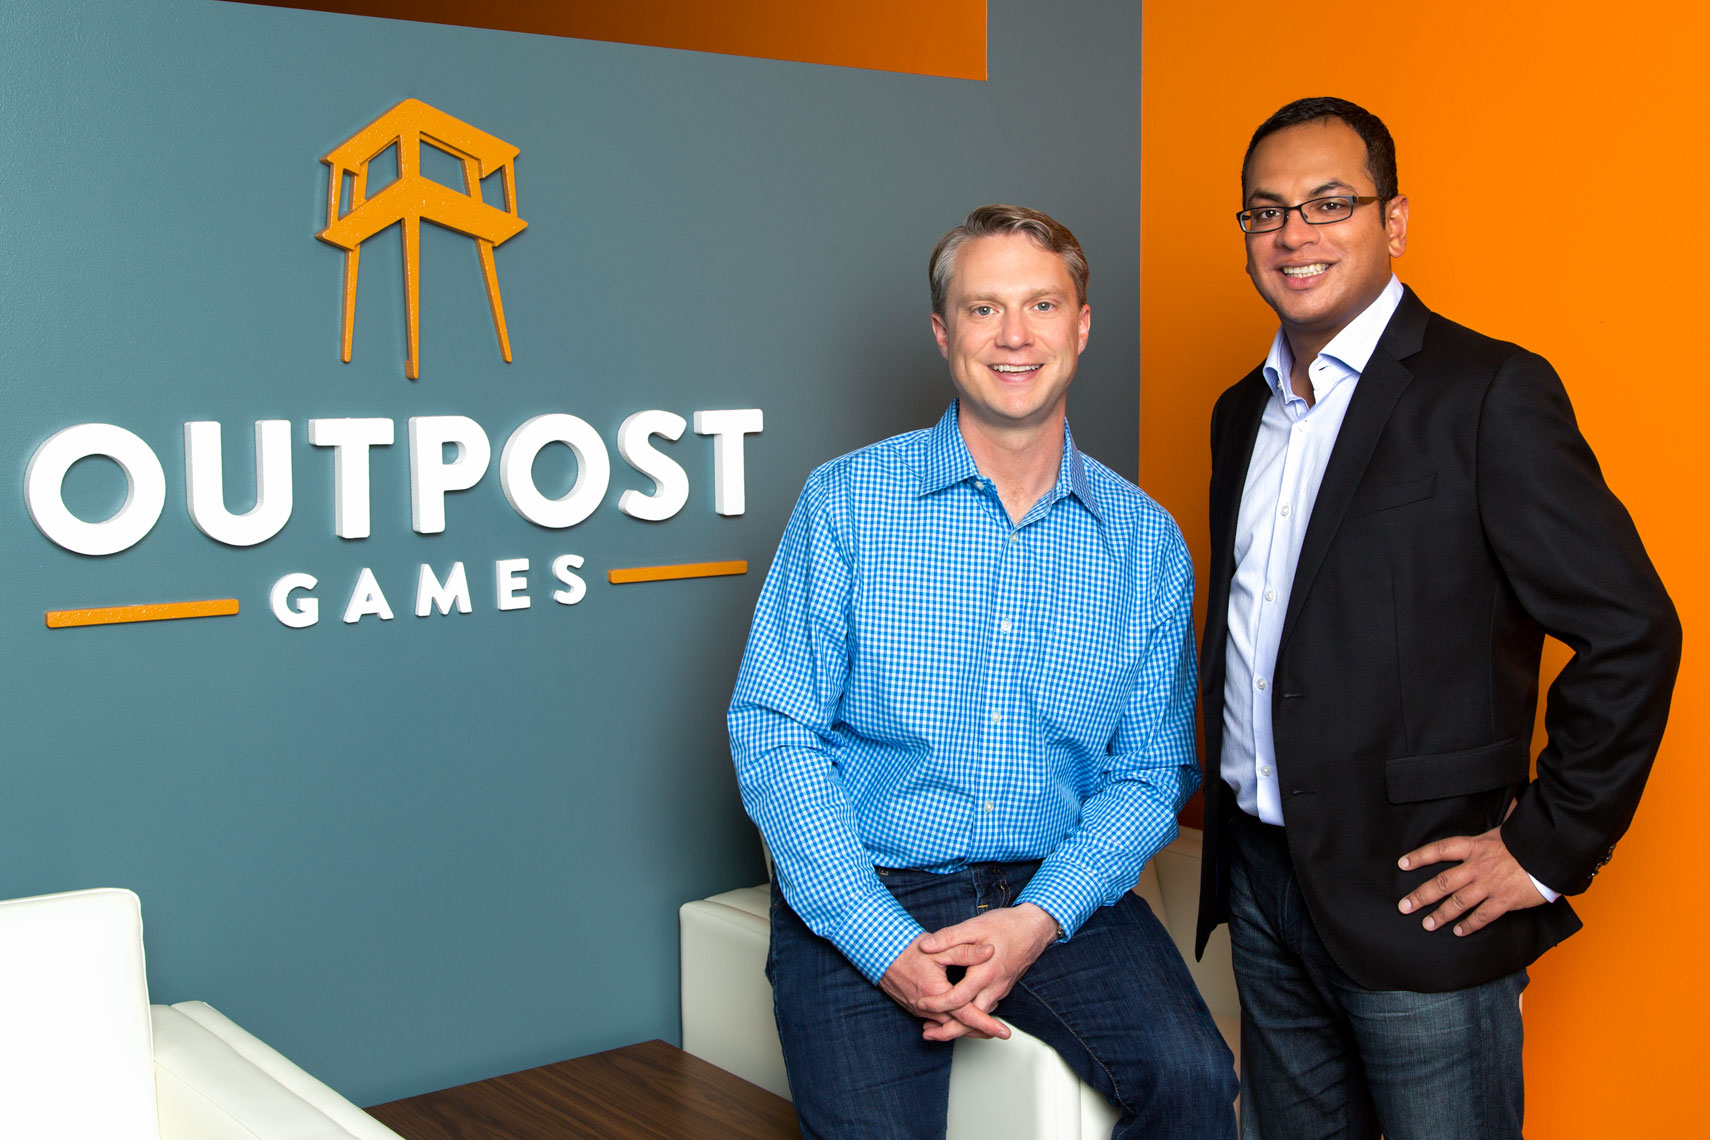 Outpost_Games_Founders